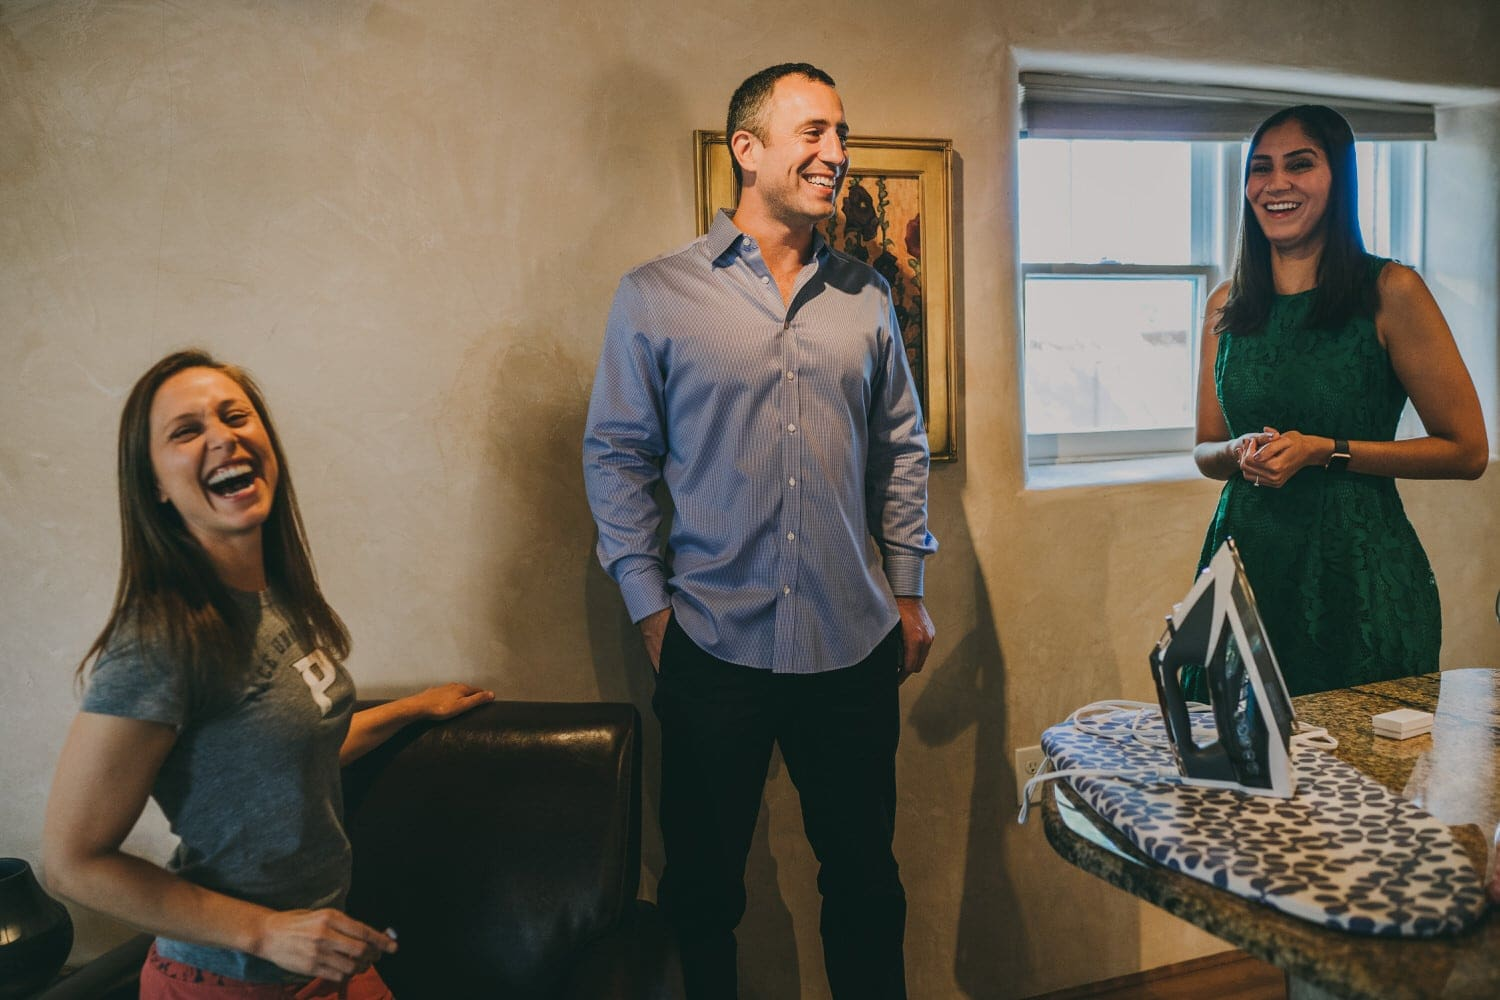 Groom laughing with his bride and sister before their elopement in Santa Fe